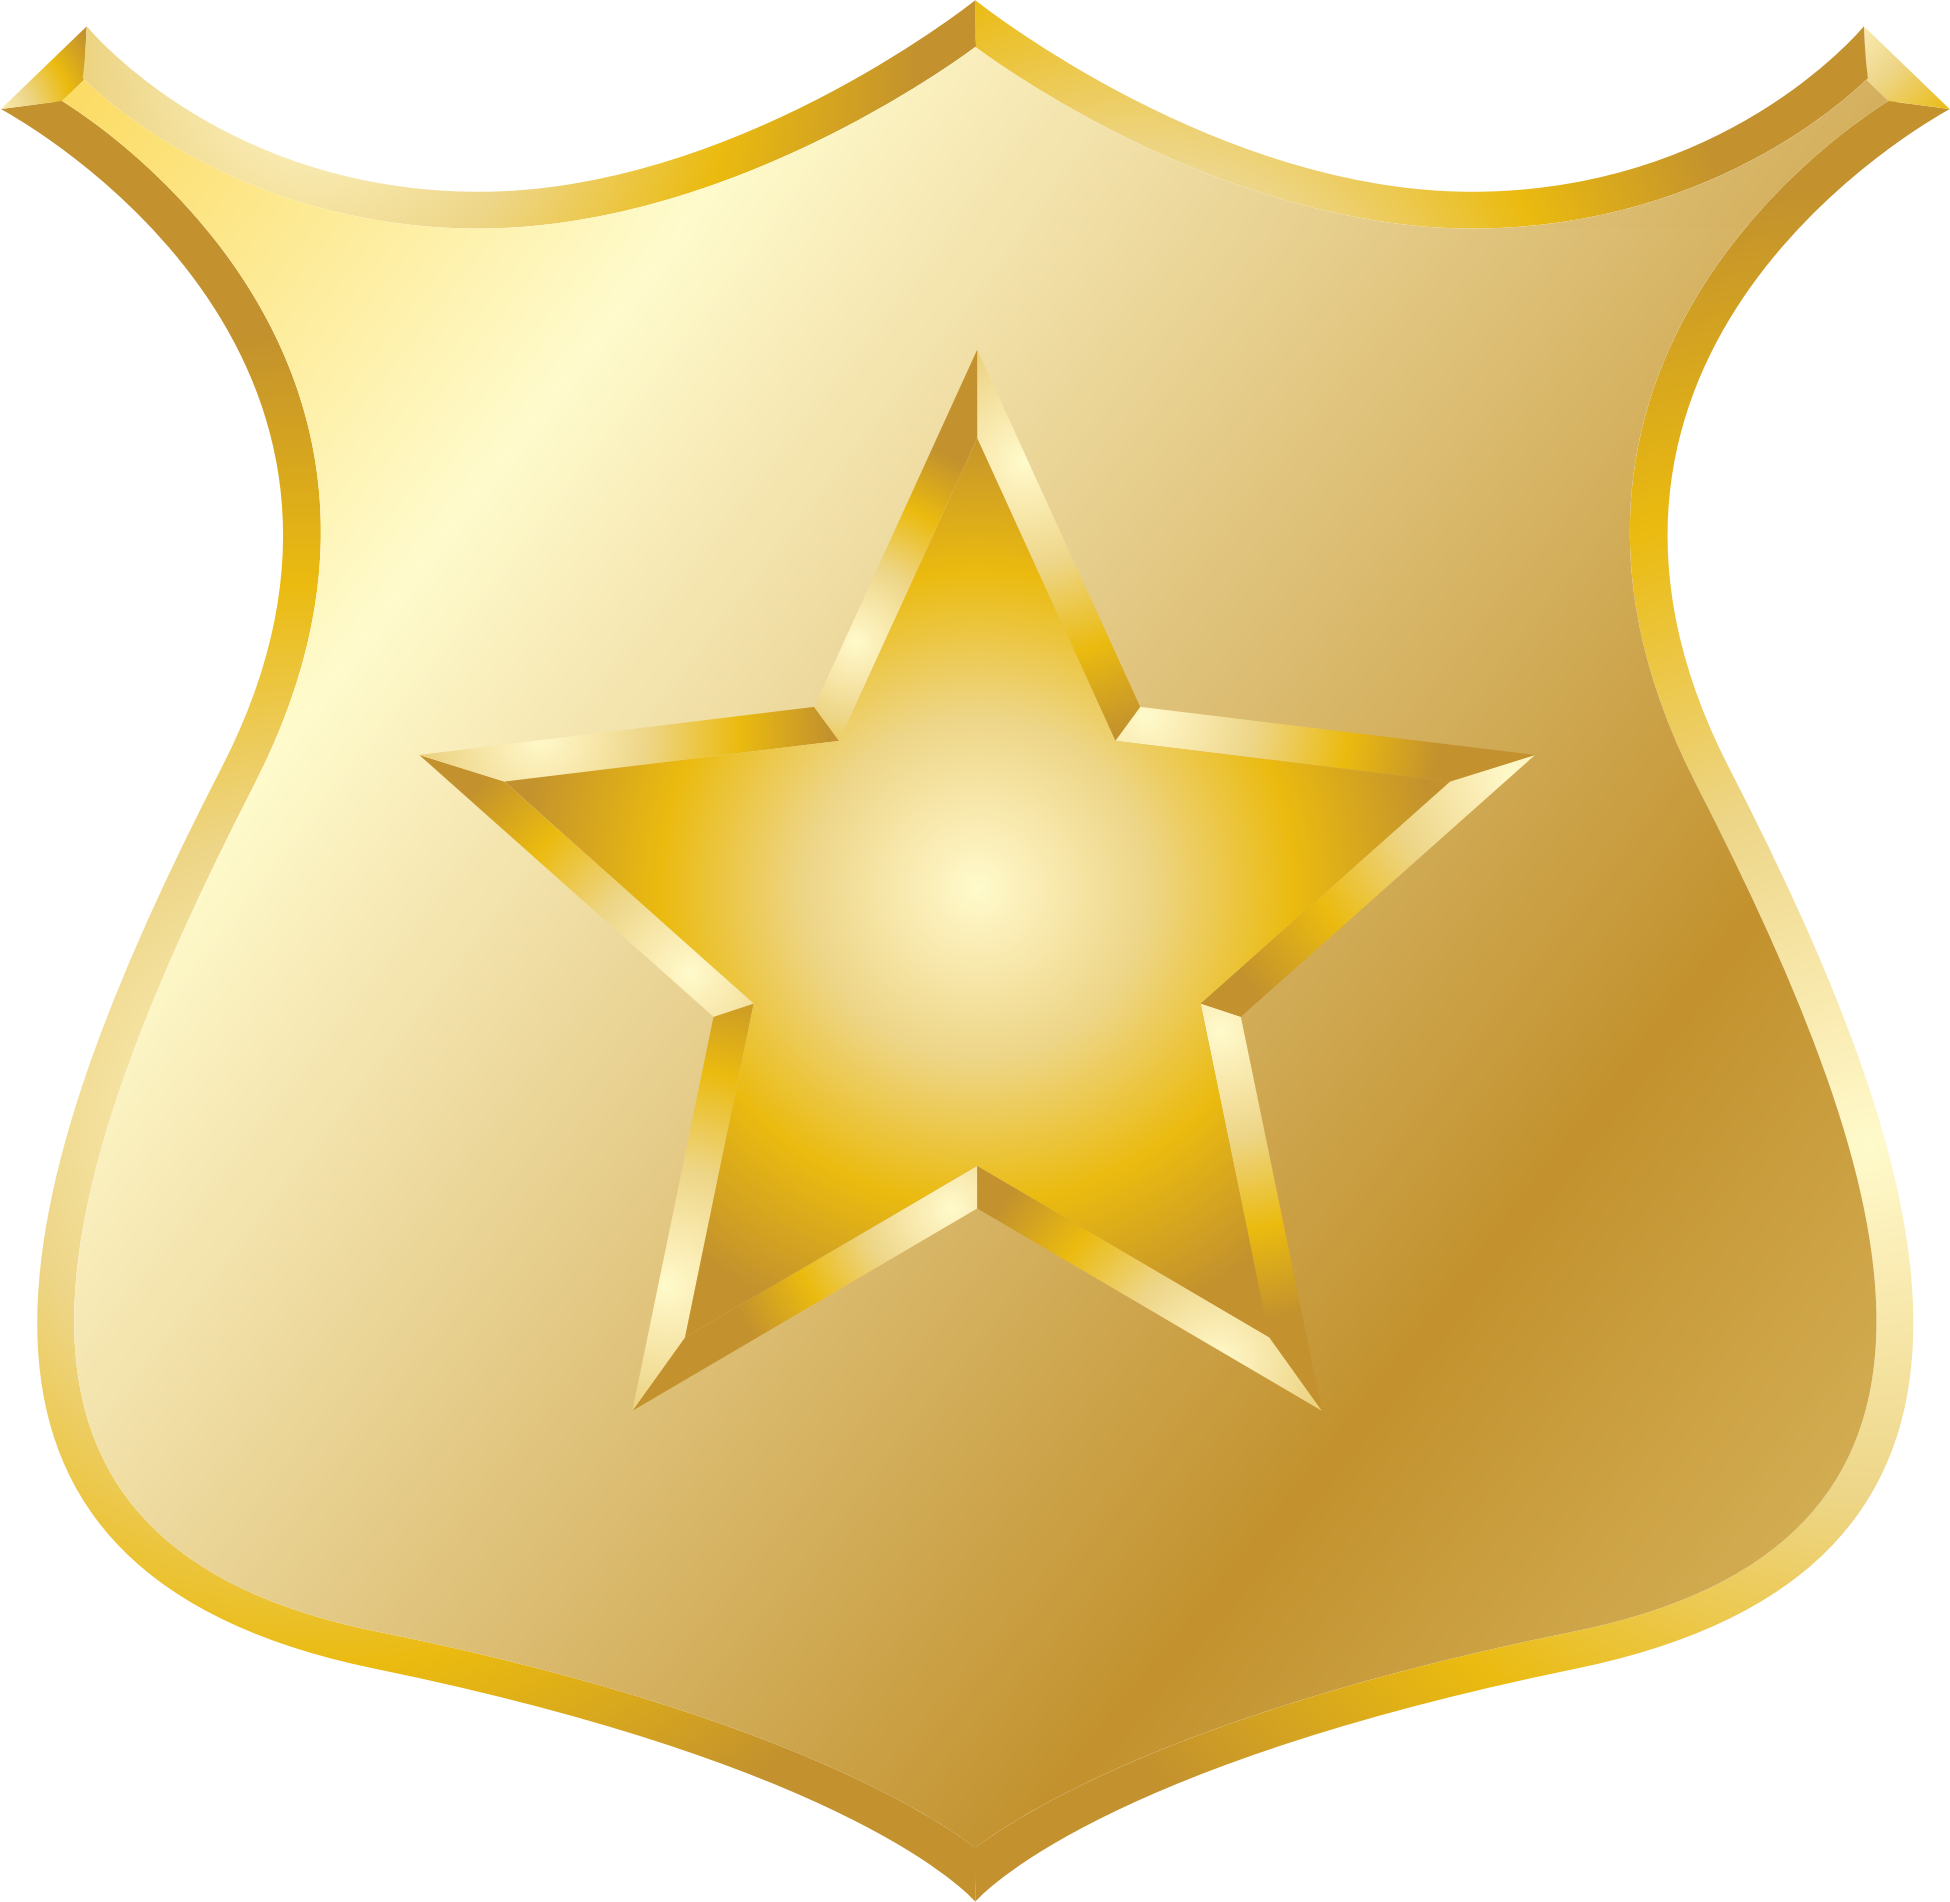 Sherriff star clipart png free 28+ Collection of Police Star Clipart | High quality, free cliparts ... png free